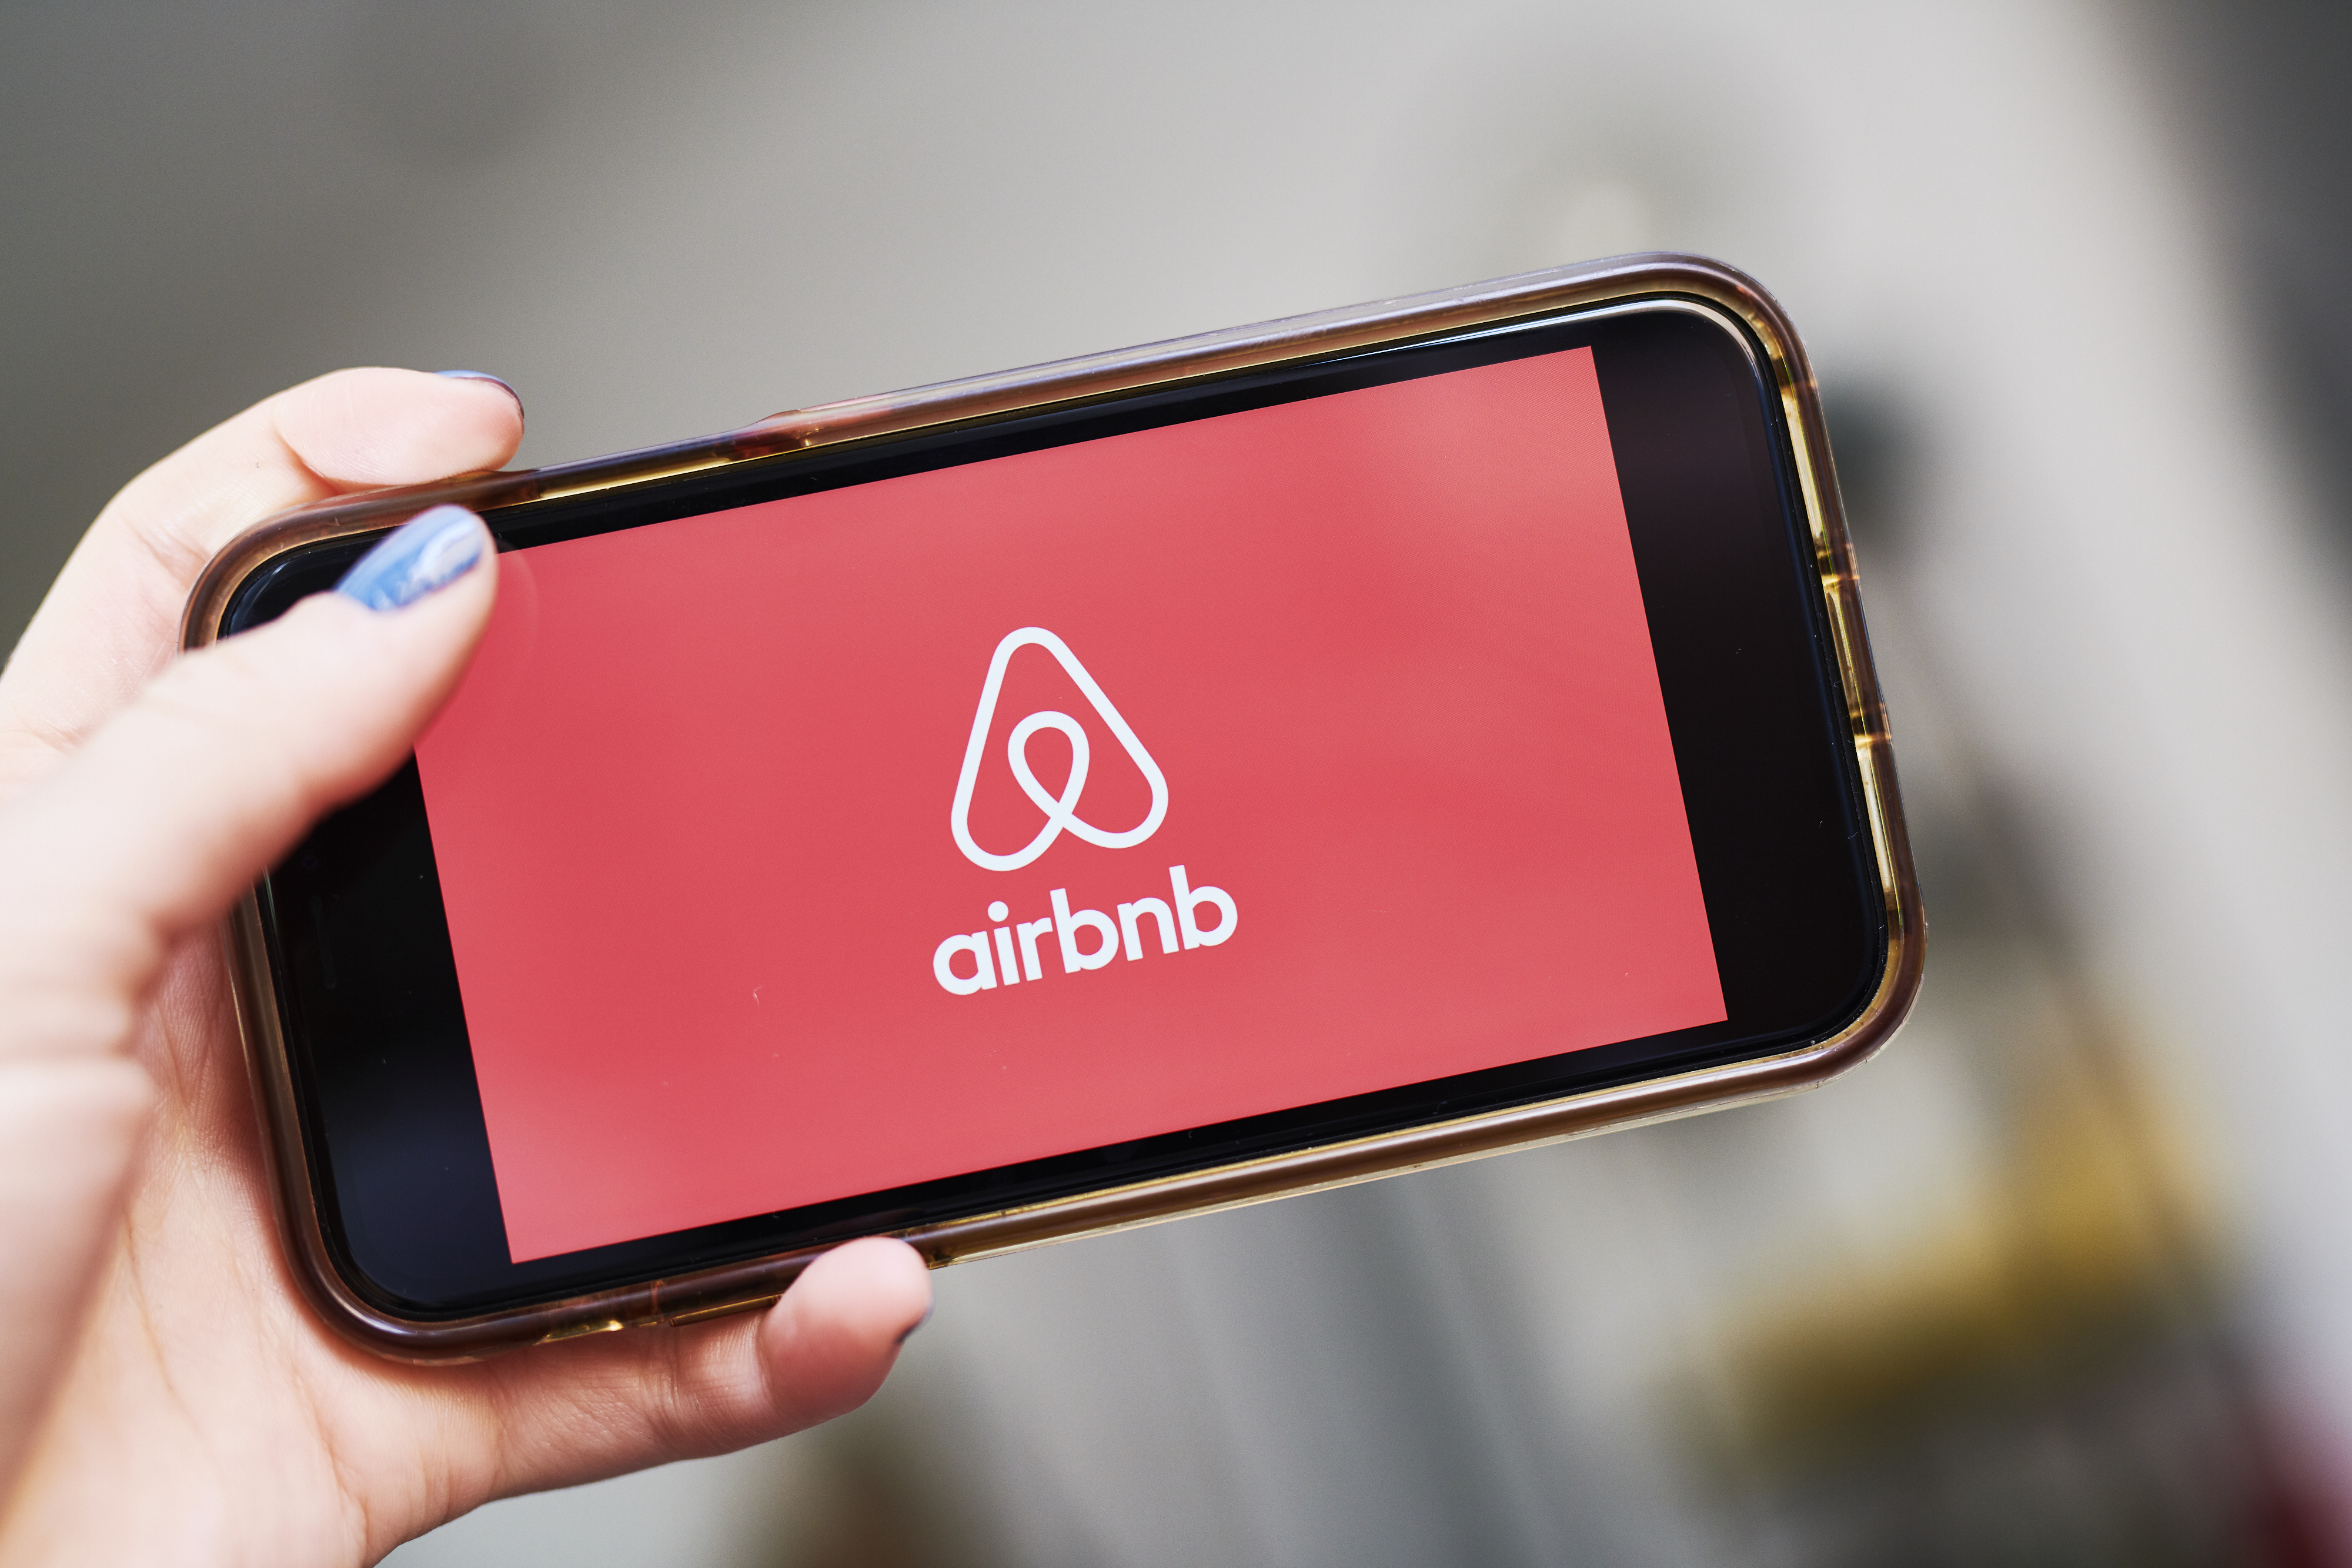 Airbnb Reportedly Paid a Rape Victim $7 Million for Silence on Settlement - vice